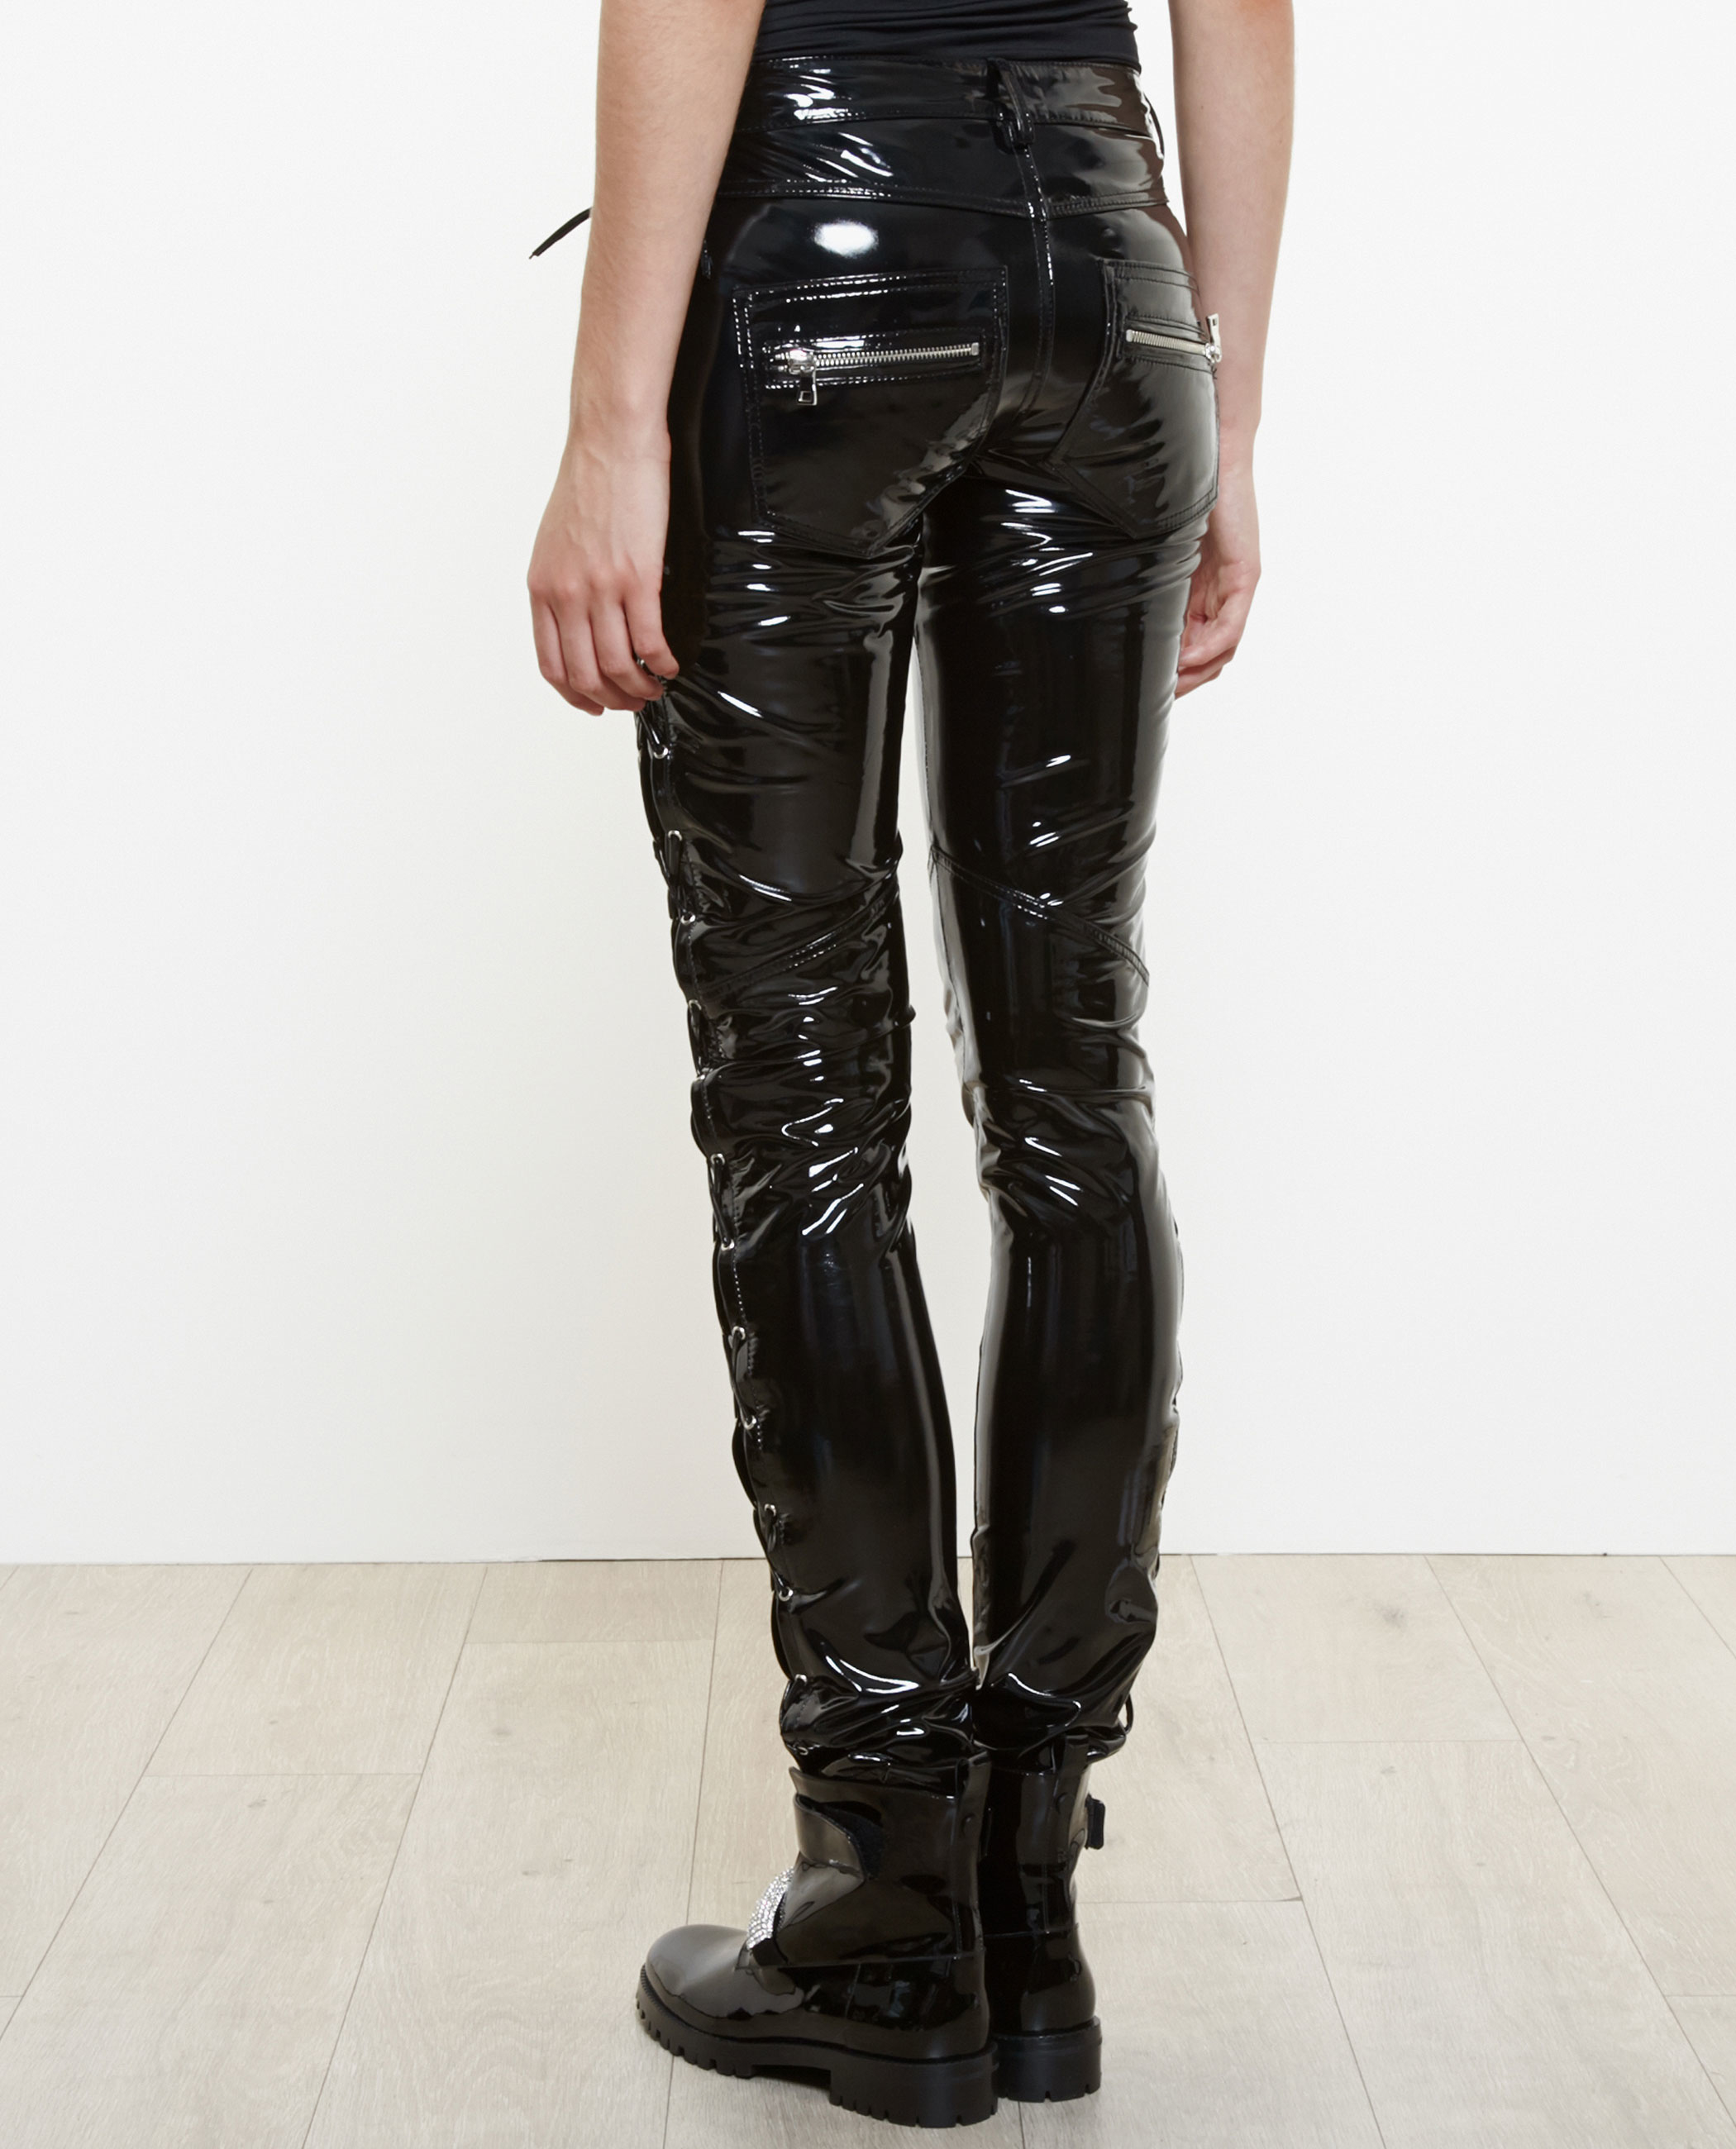 The English television and radio personality Zoë Ball wore black PVC pants in one of her appearances on English TV program called Shooting Stars. In certain episodes of the American television series called Smallville the actress Erica Durance appears wearing PVC clothes.